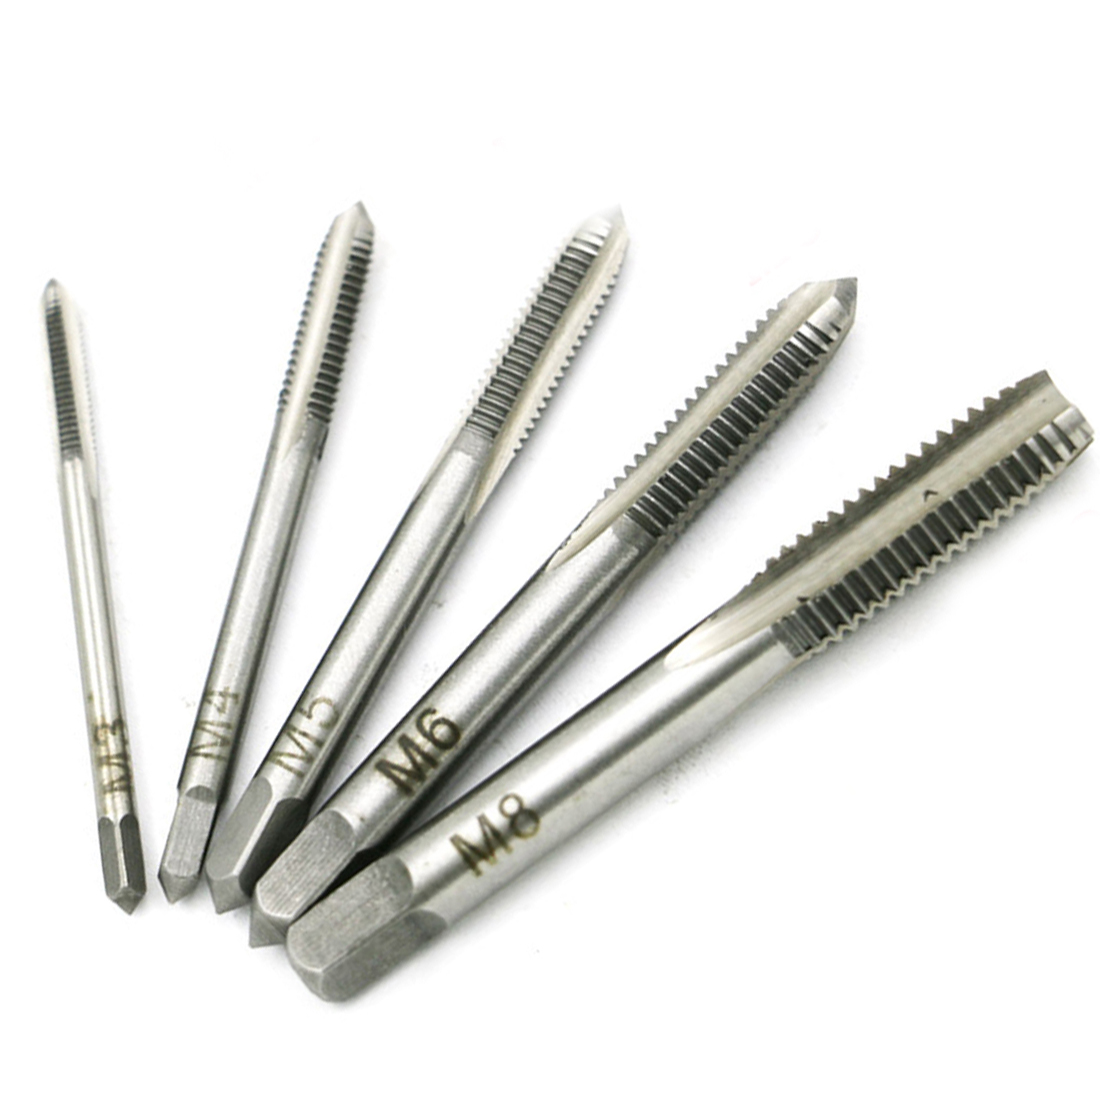 5PCS/Set HSS M3 M4 M5 M6 M8 Machine Spiral Point Straight Fluted Screw Thread Metric Plug Hand Tap Drill Set Hand Tools 4pcs set hand tap hex shank hss screw spiral point thread metric plug drill bits m3 m4 m5 m6 hand tools